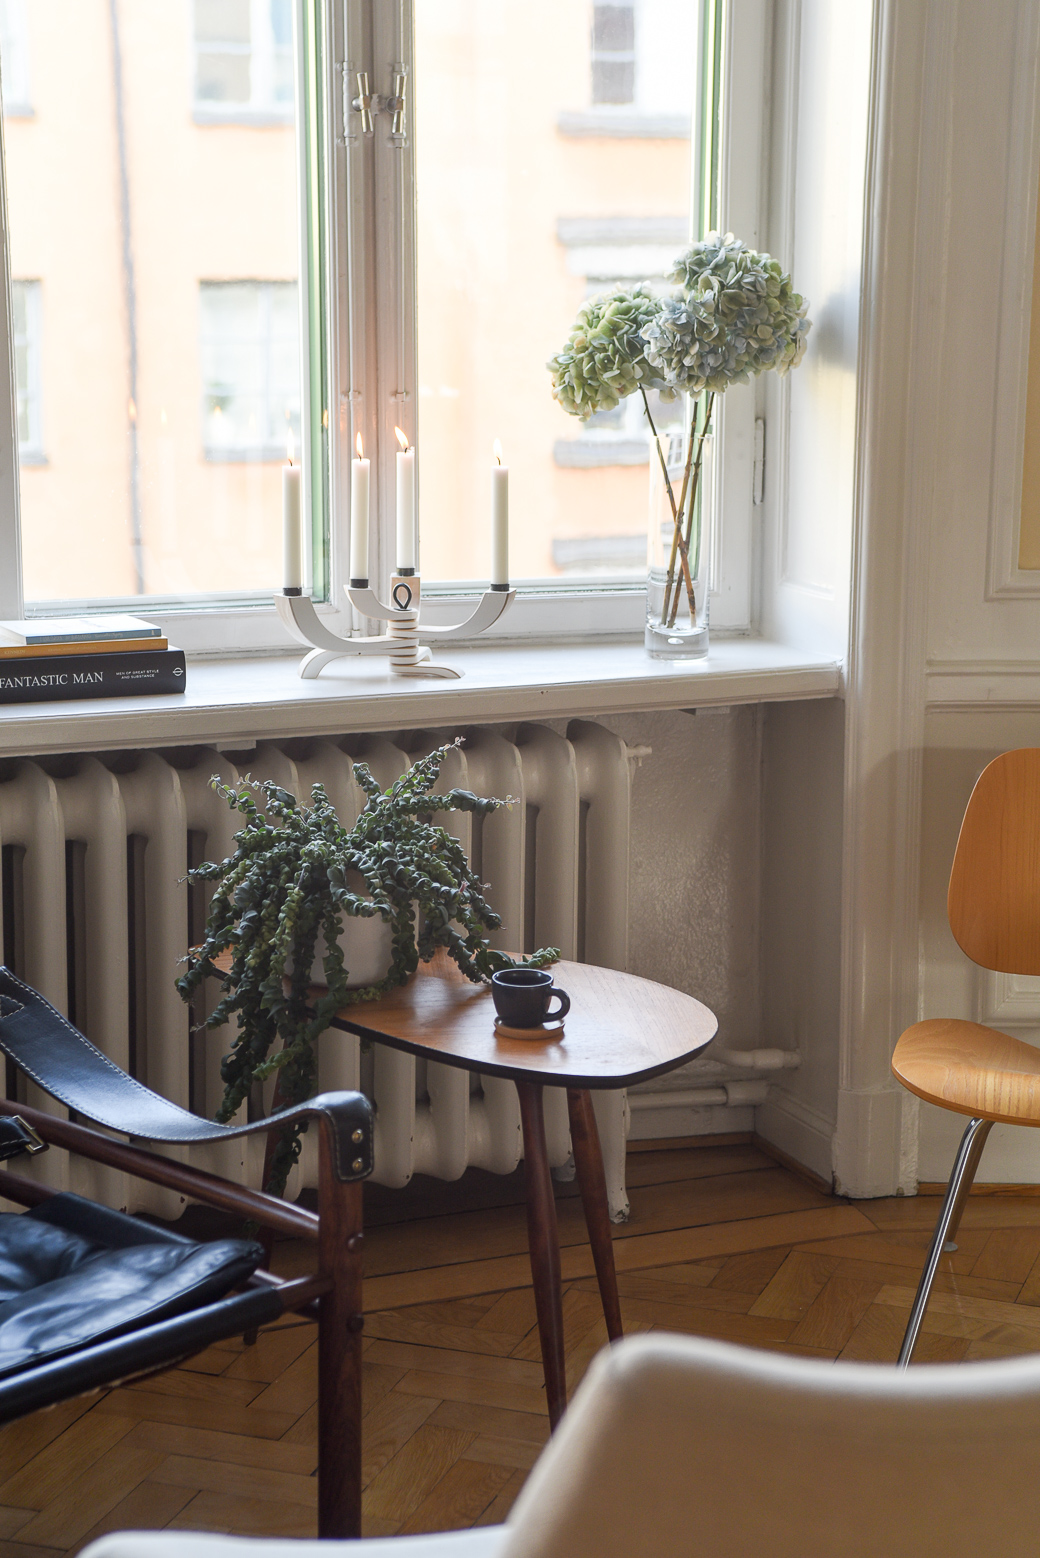 Every day Swedish Design in the home- nordic candle holder.jpg